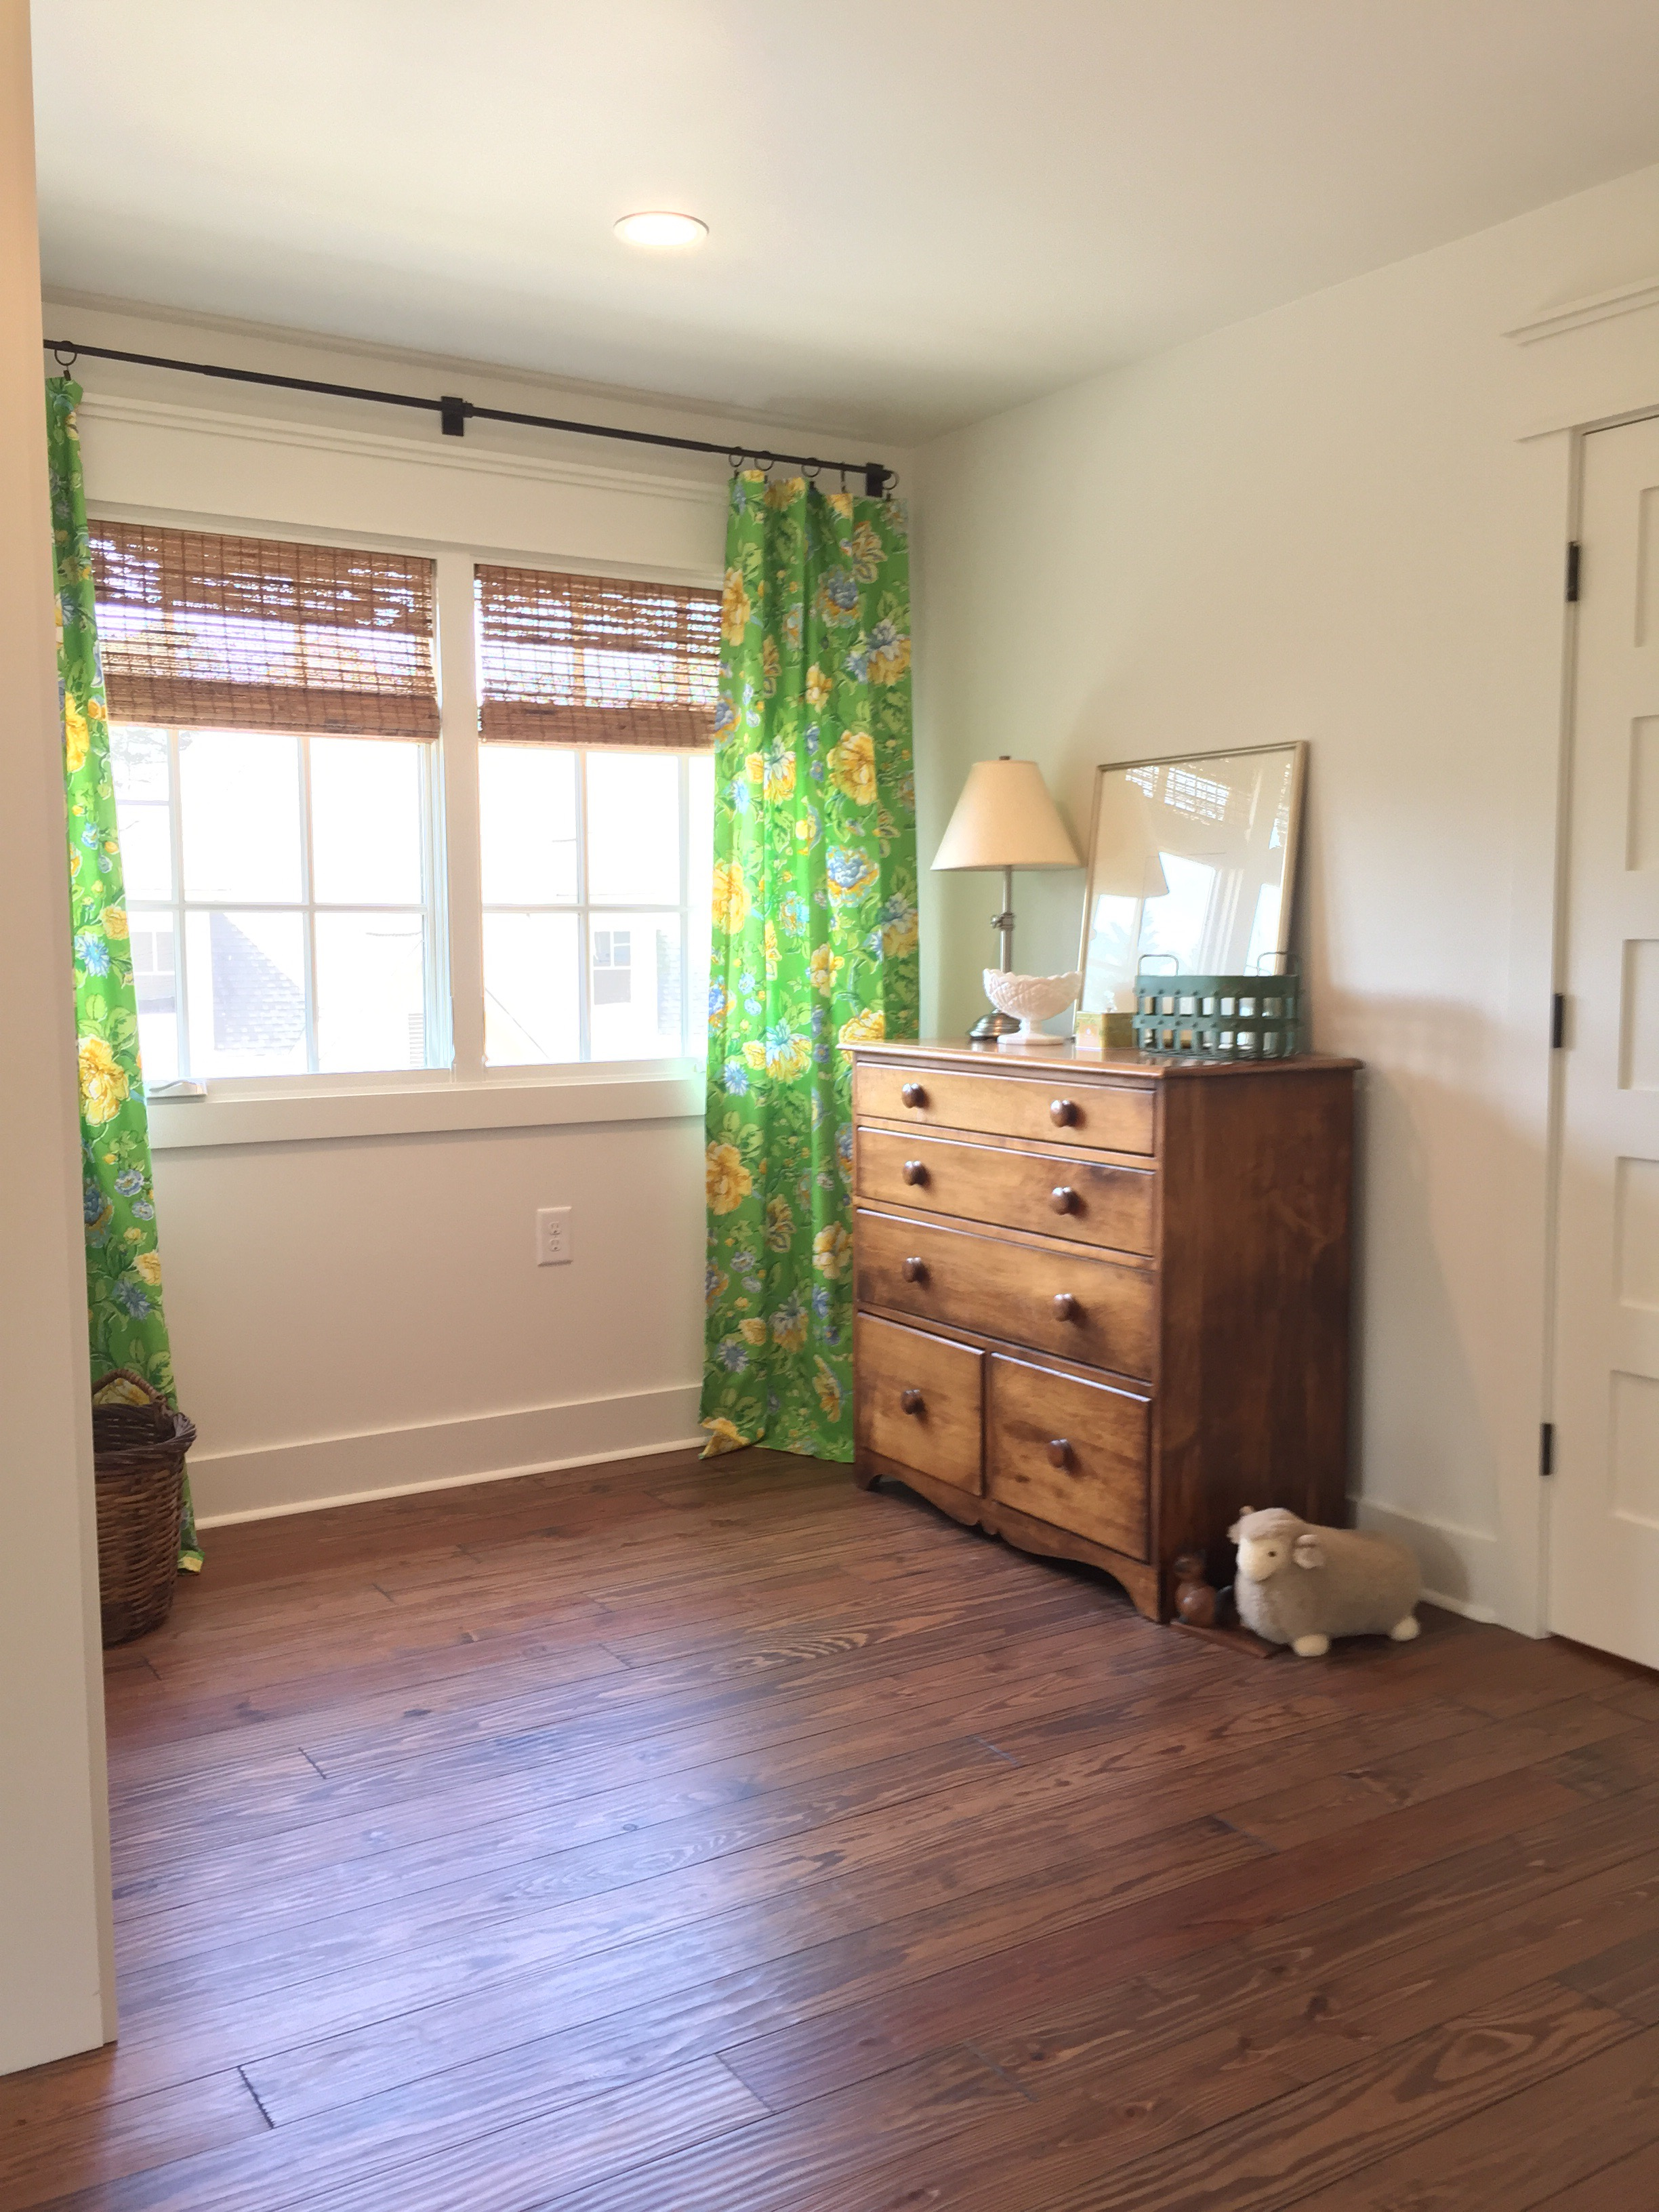 the dutch door home musings from a southern interior design we added this dormer window during our renovation my husband jacob didn t see the need for it and thought it would be a waste of money